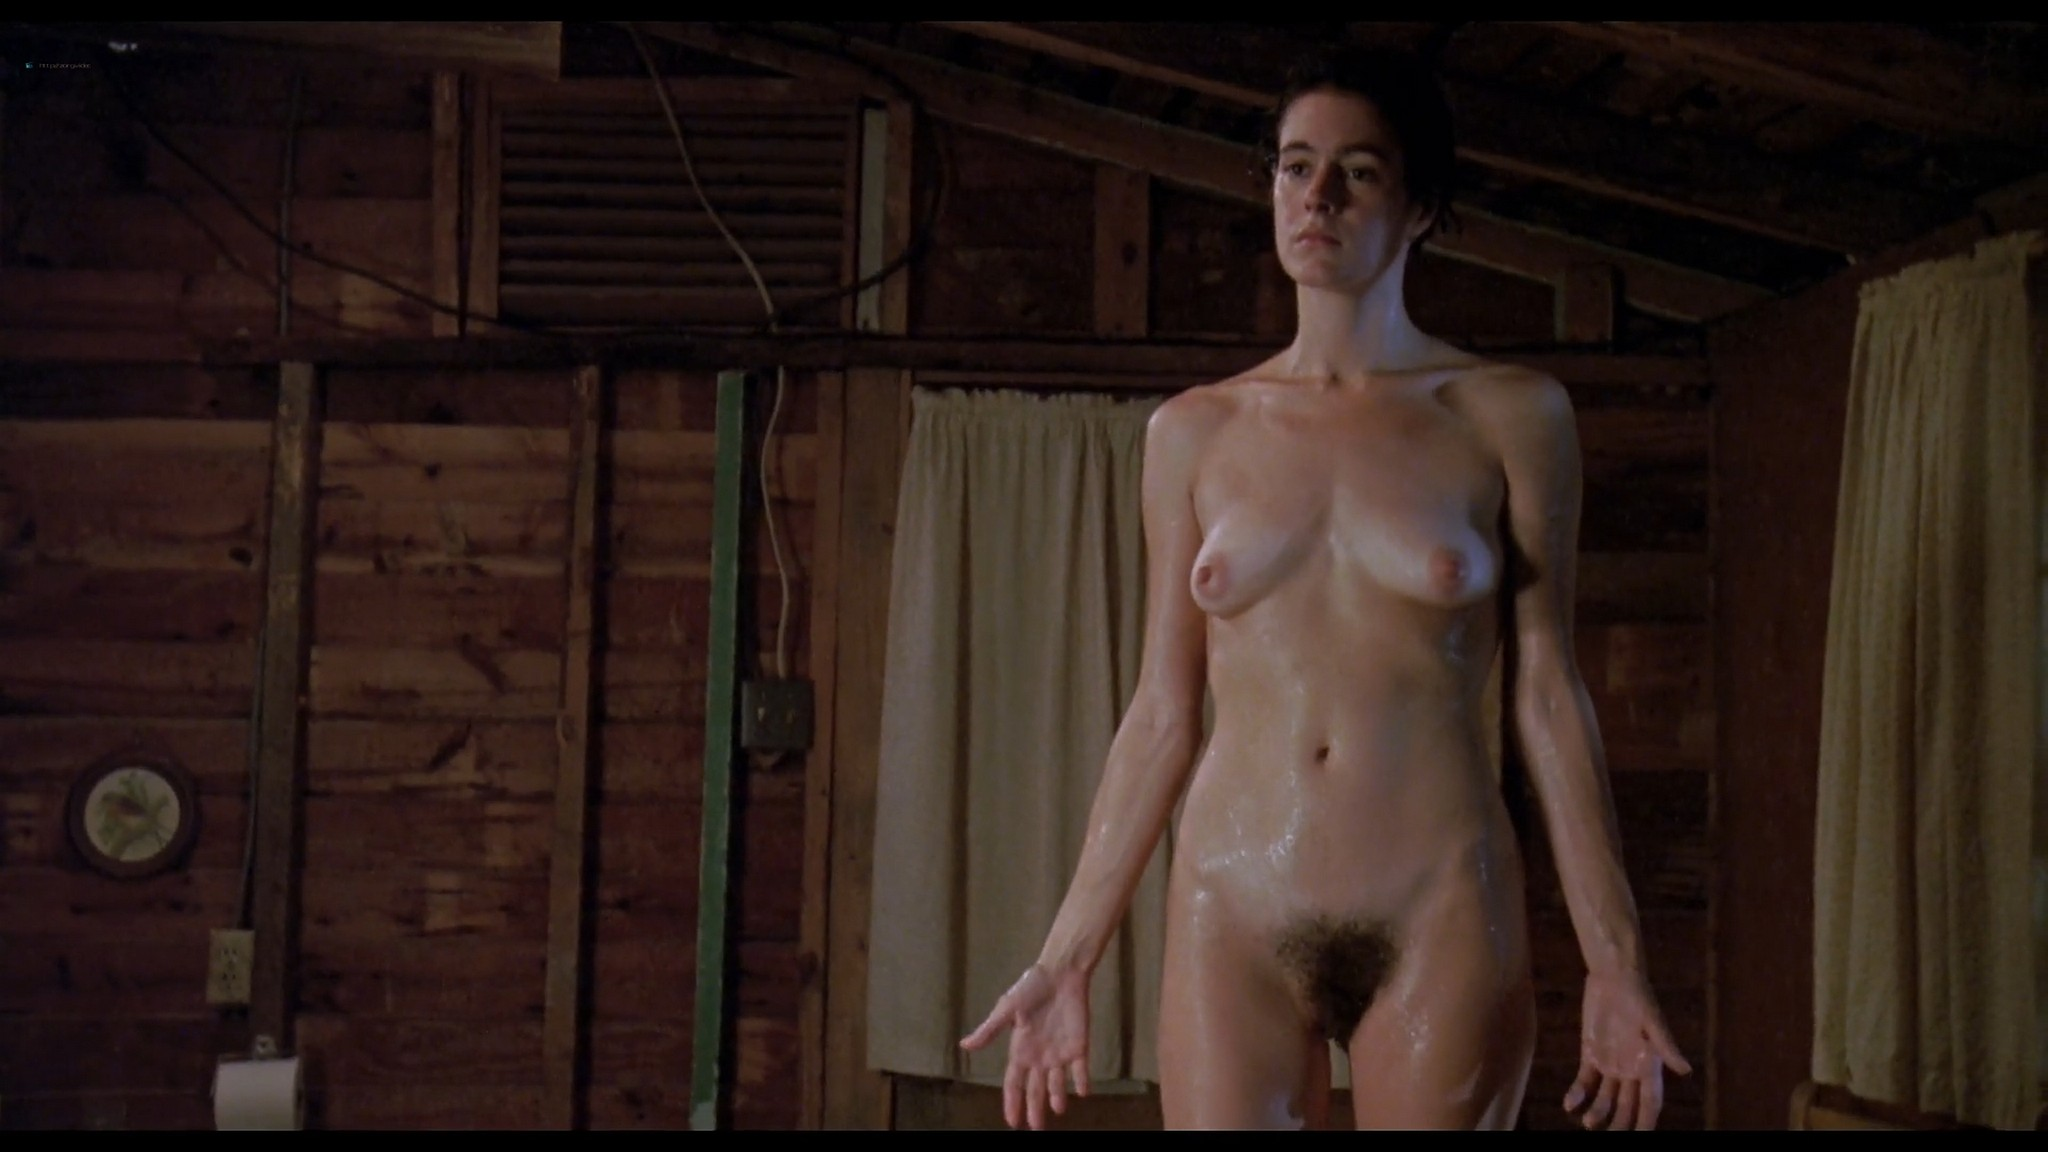 Sean Young nude full frontal Fern Dorsey and others nude Love Crimes 1992 1080p Web 11